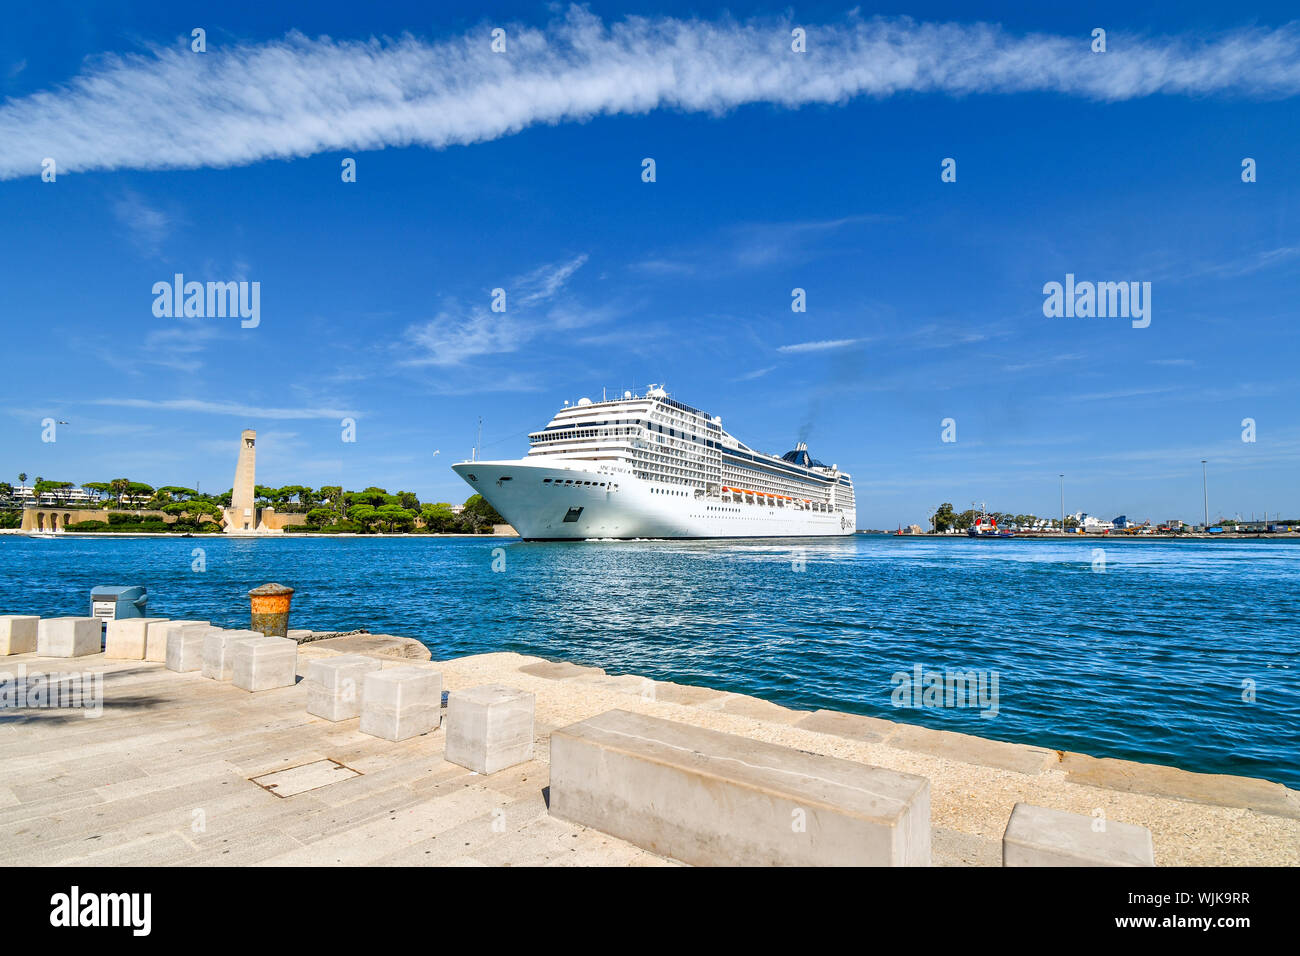 A massive cruise ship pulls into the narrow port on the Adriatic Sea in the mediterranean city of Brindisi, Italy, in the Puglia region. Stock Photo